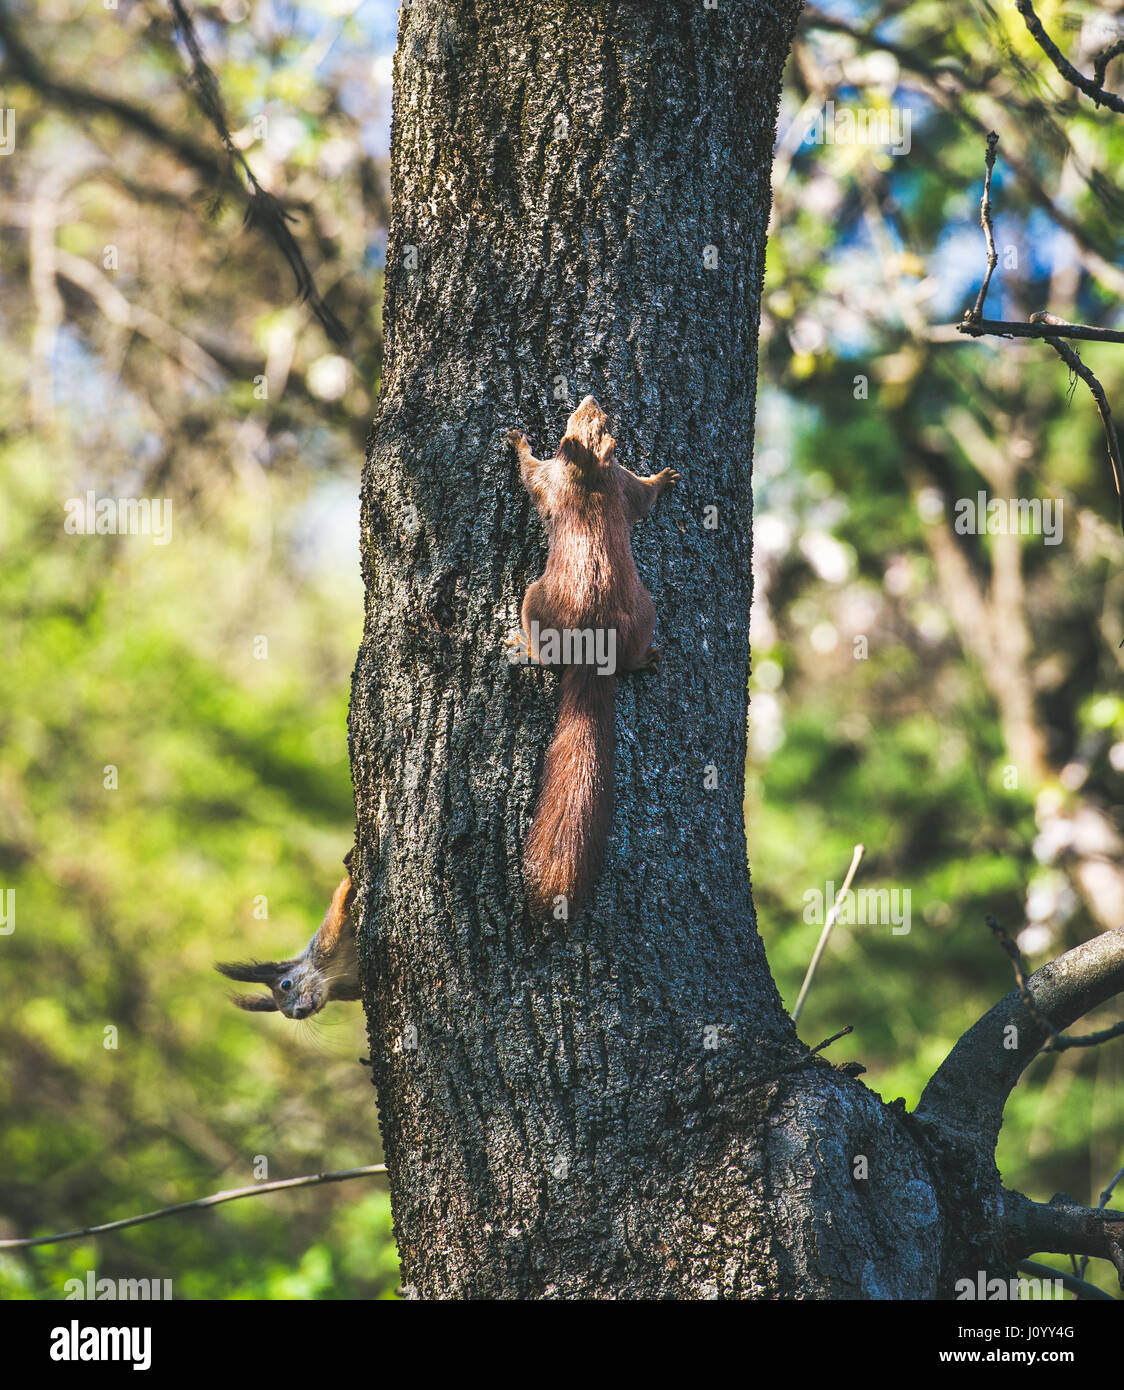 Squirrels on tree in Gellert hill park in Budapest, Hungary Stock Photo